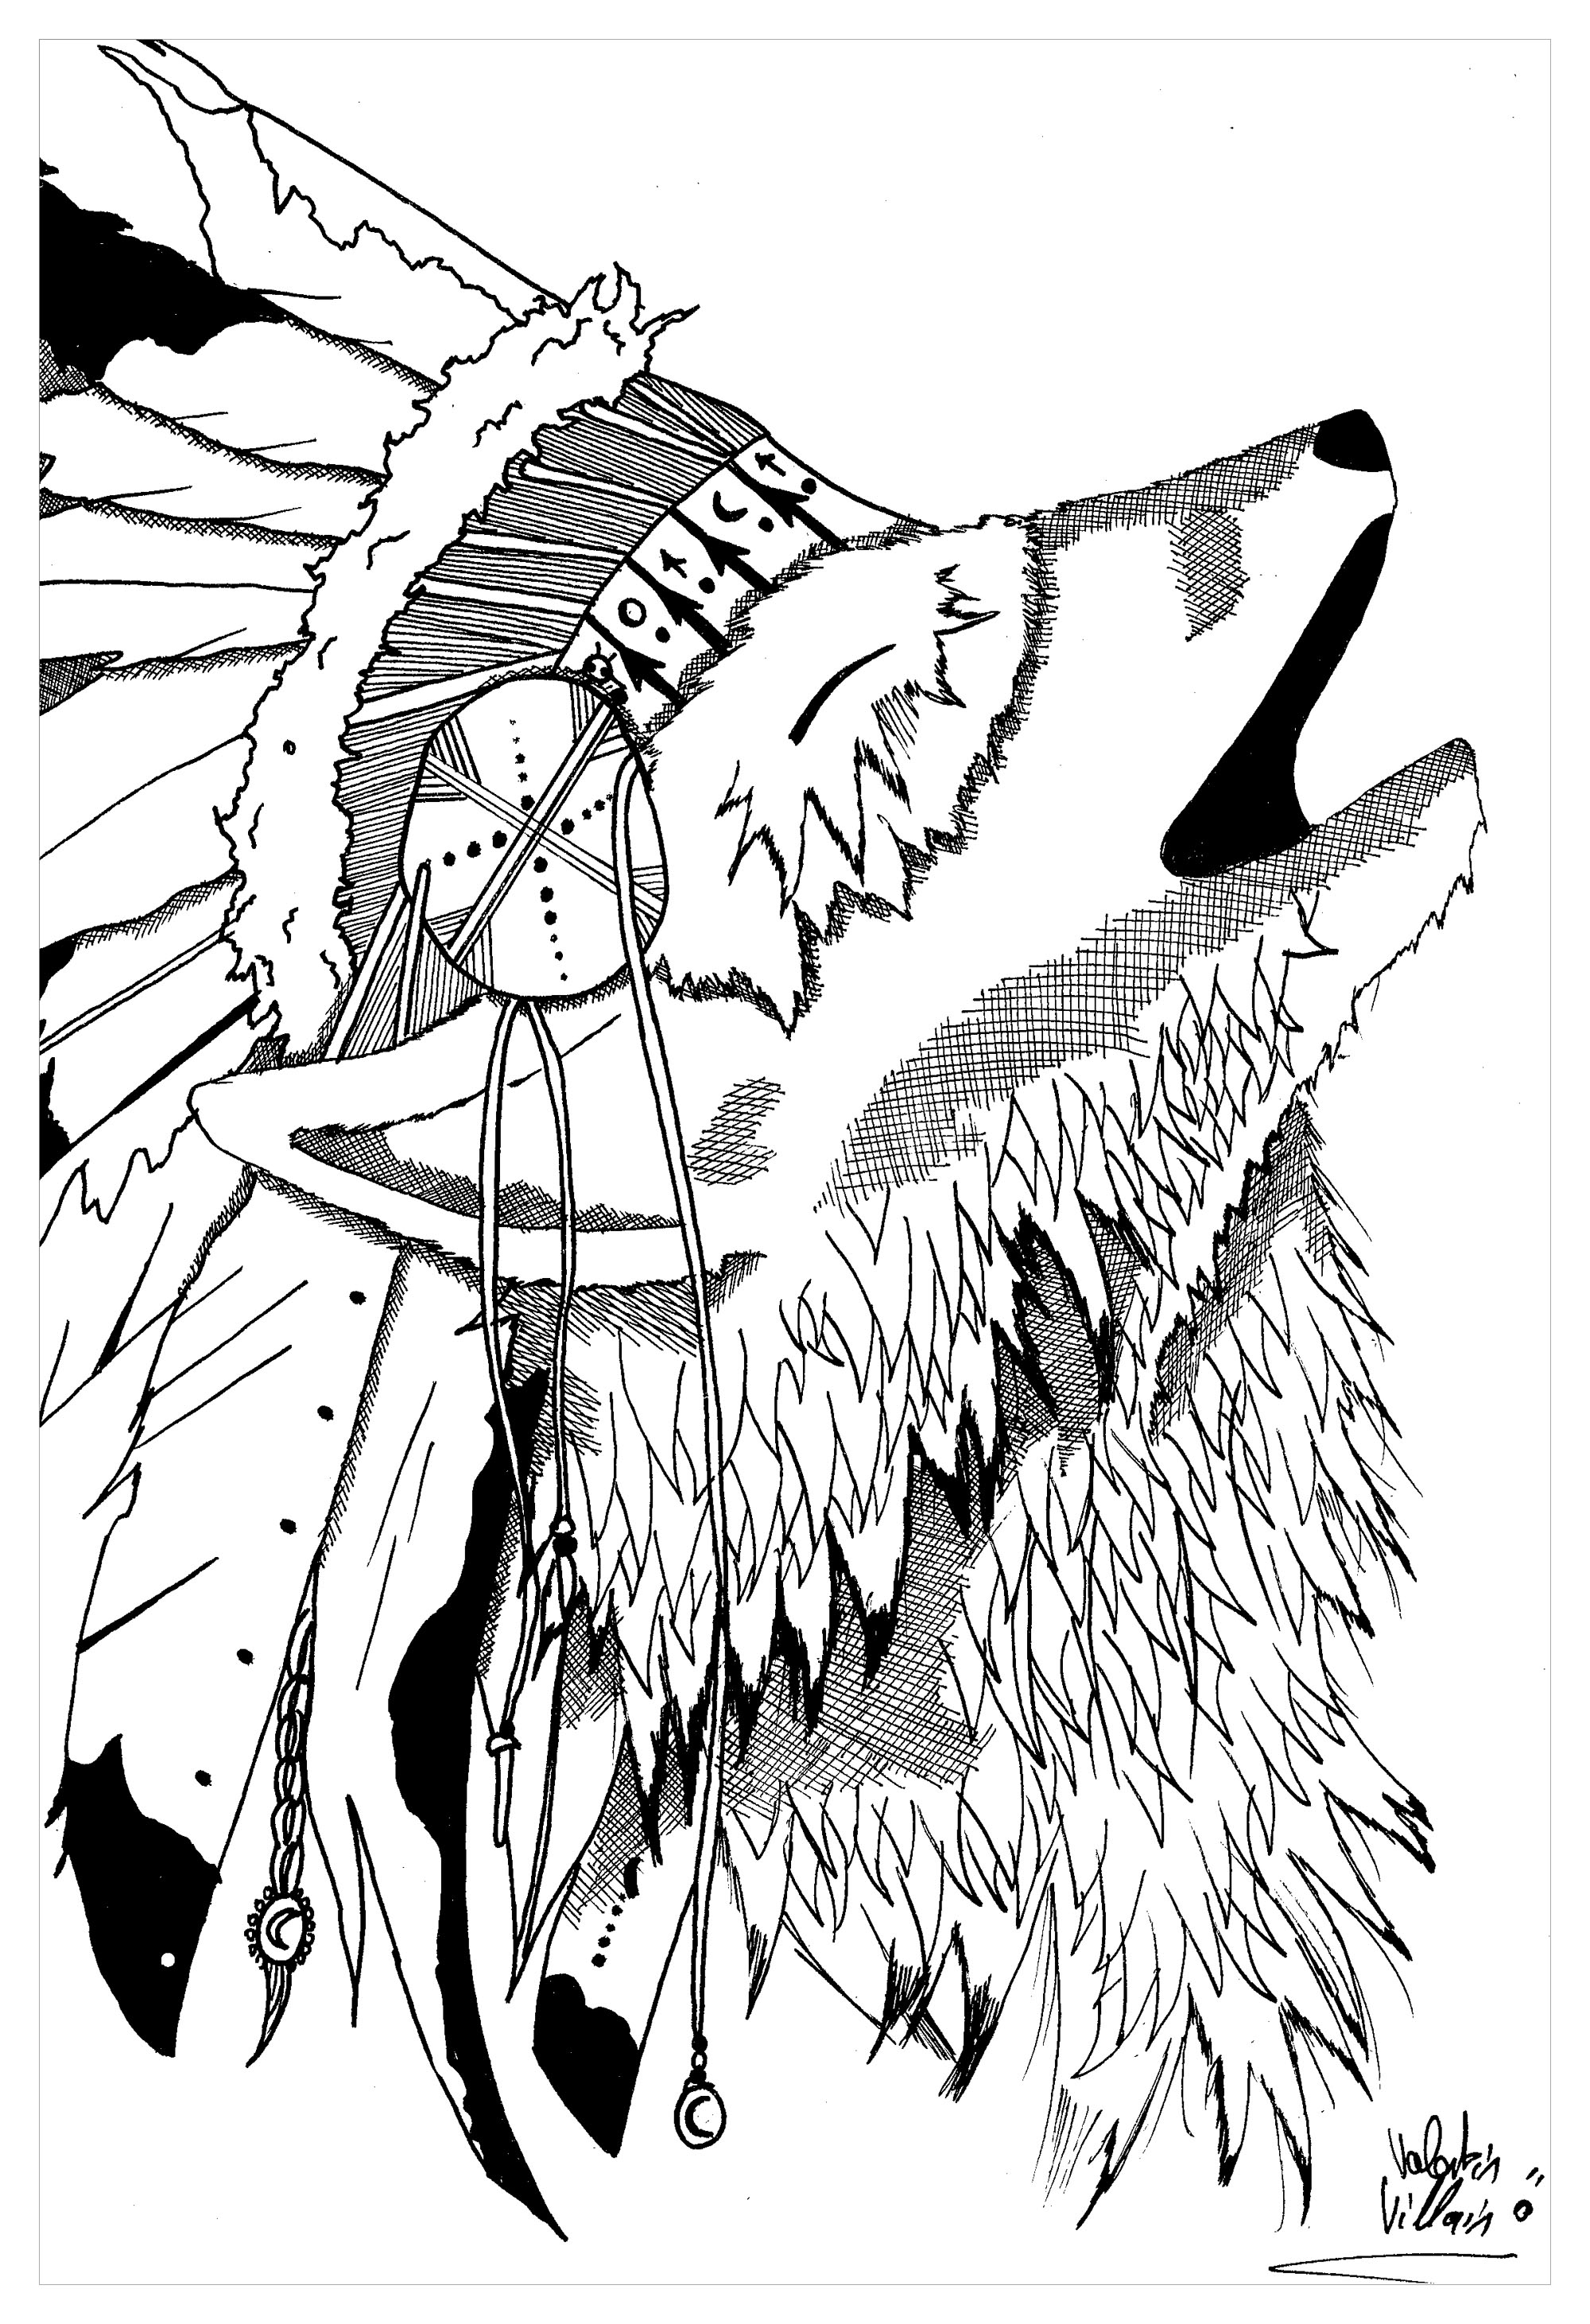 2000x2924 Obsession Indian Teepee Coloring Pages Native American For Adults